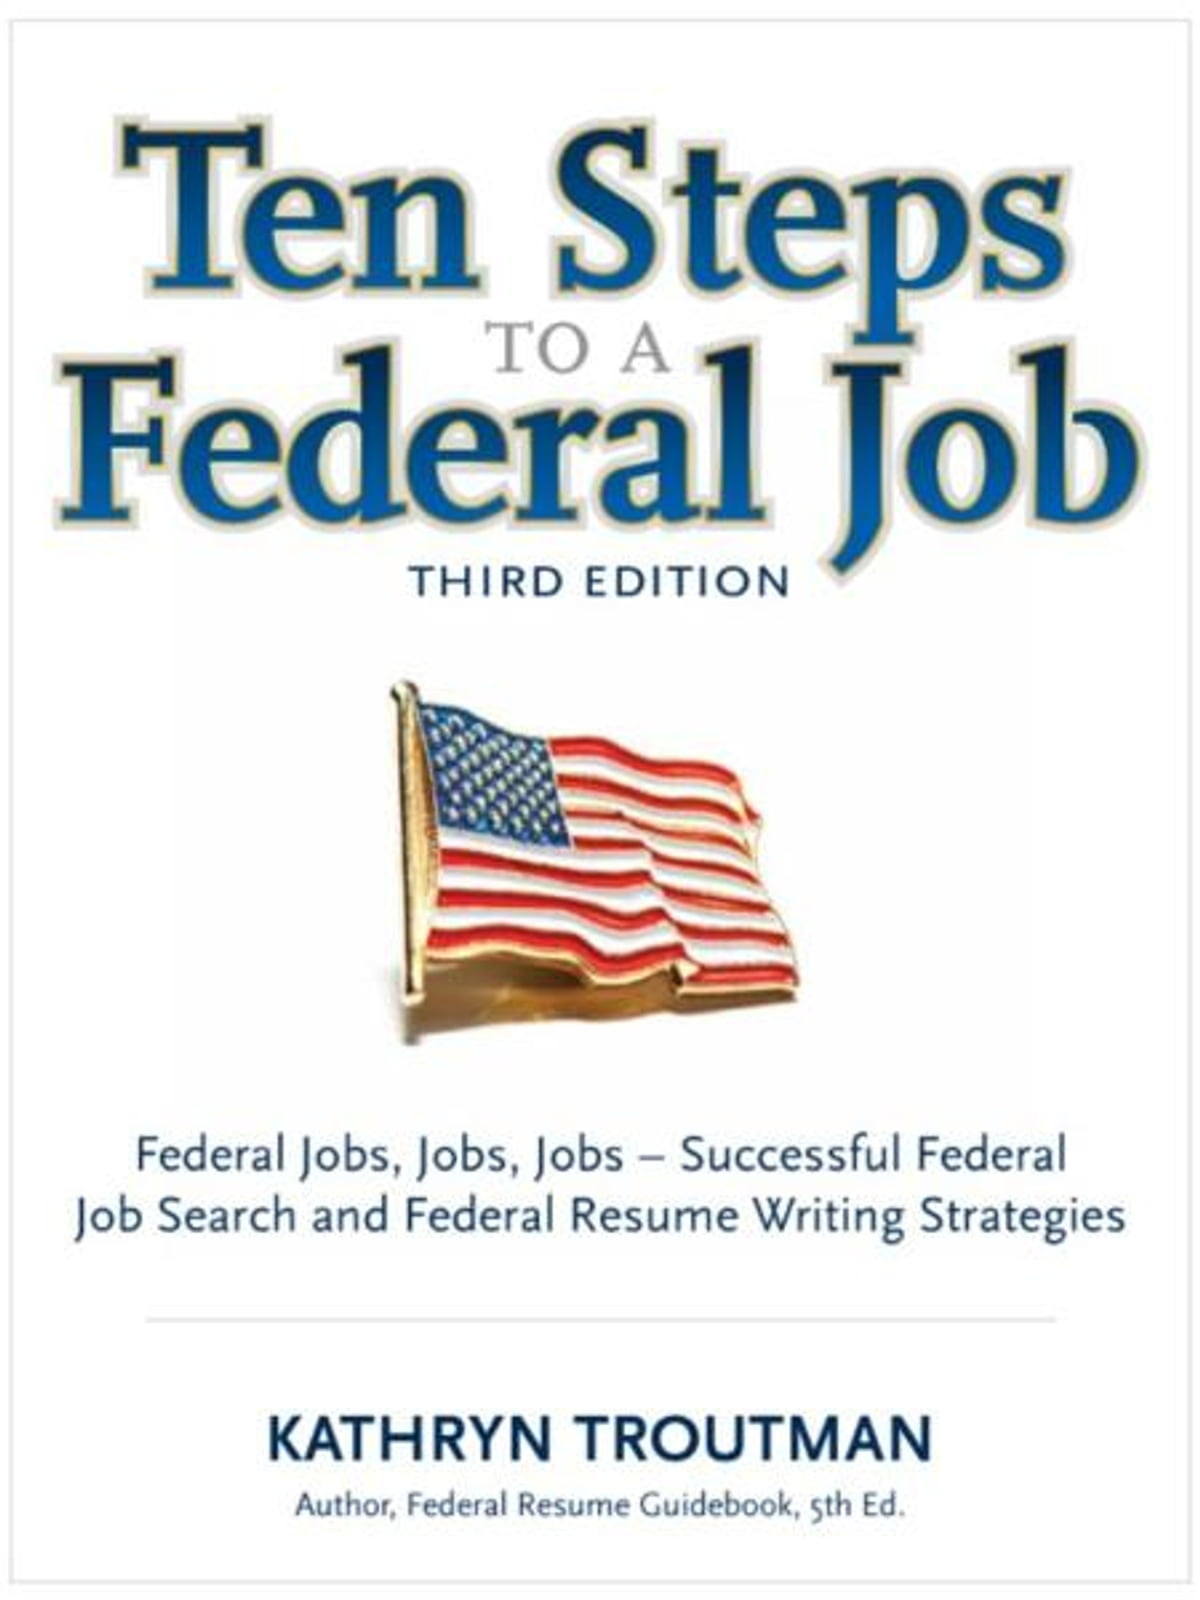 Ten Steps To A Federal Job 3rd Ed Ebook By Kathryn Troutman